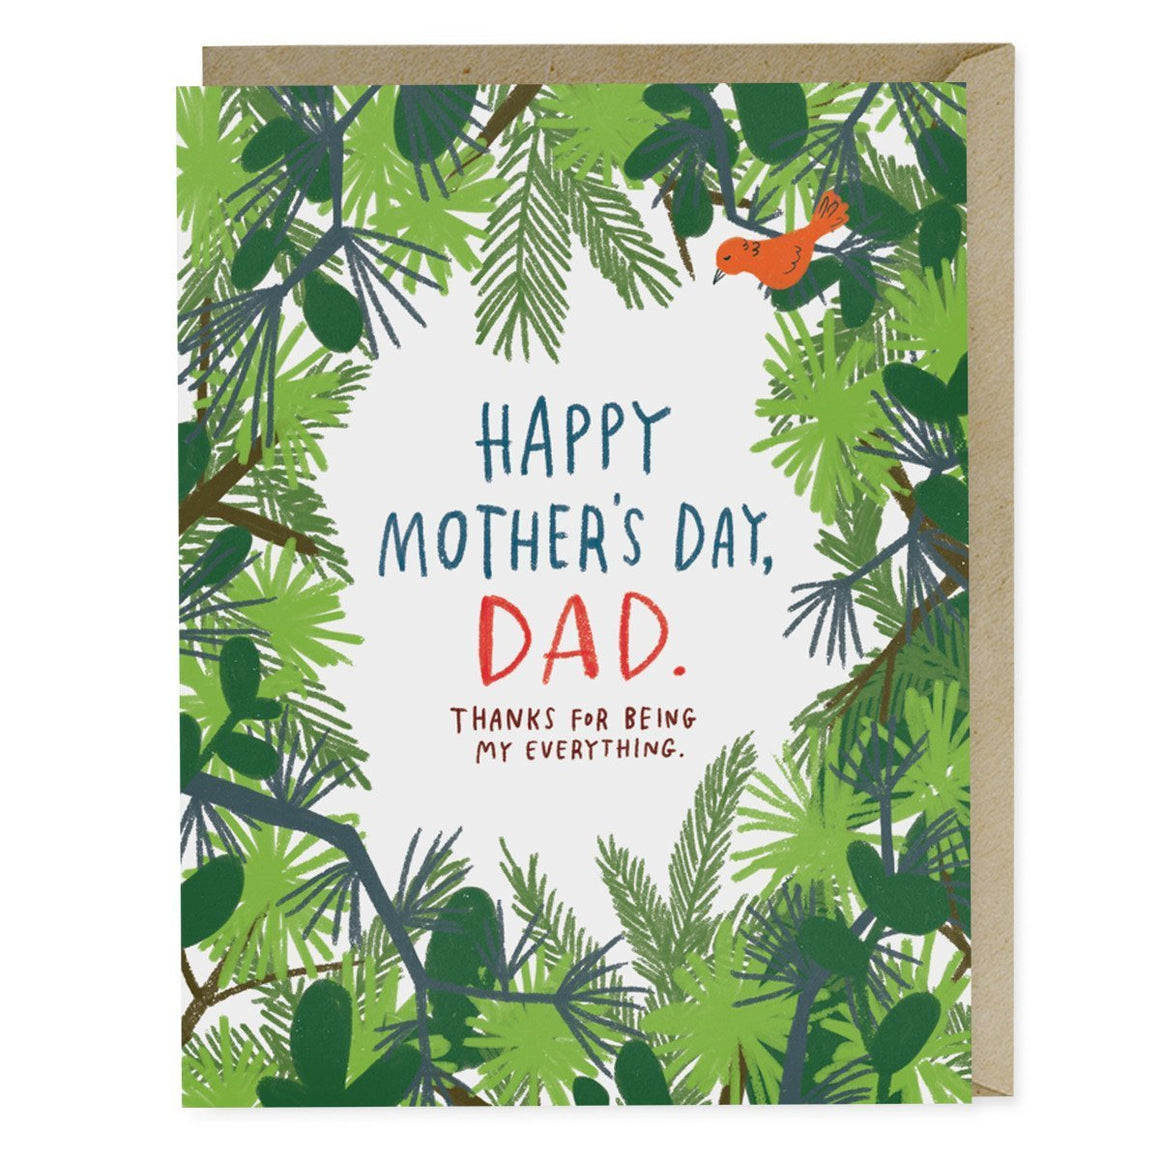 Mother's Day Dad - Greeting Card